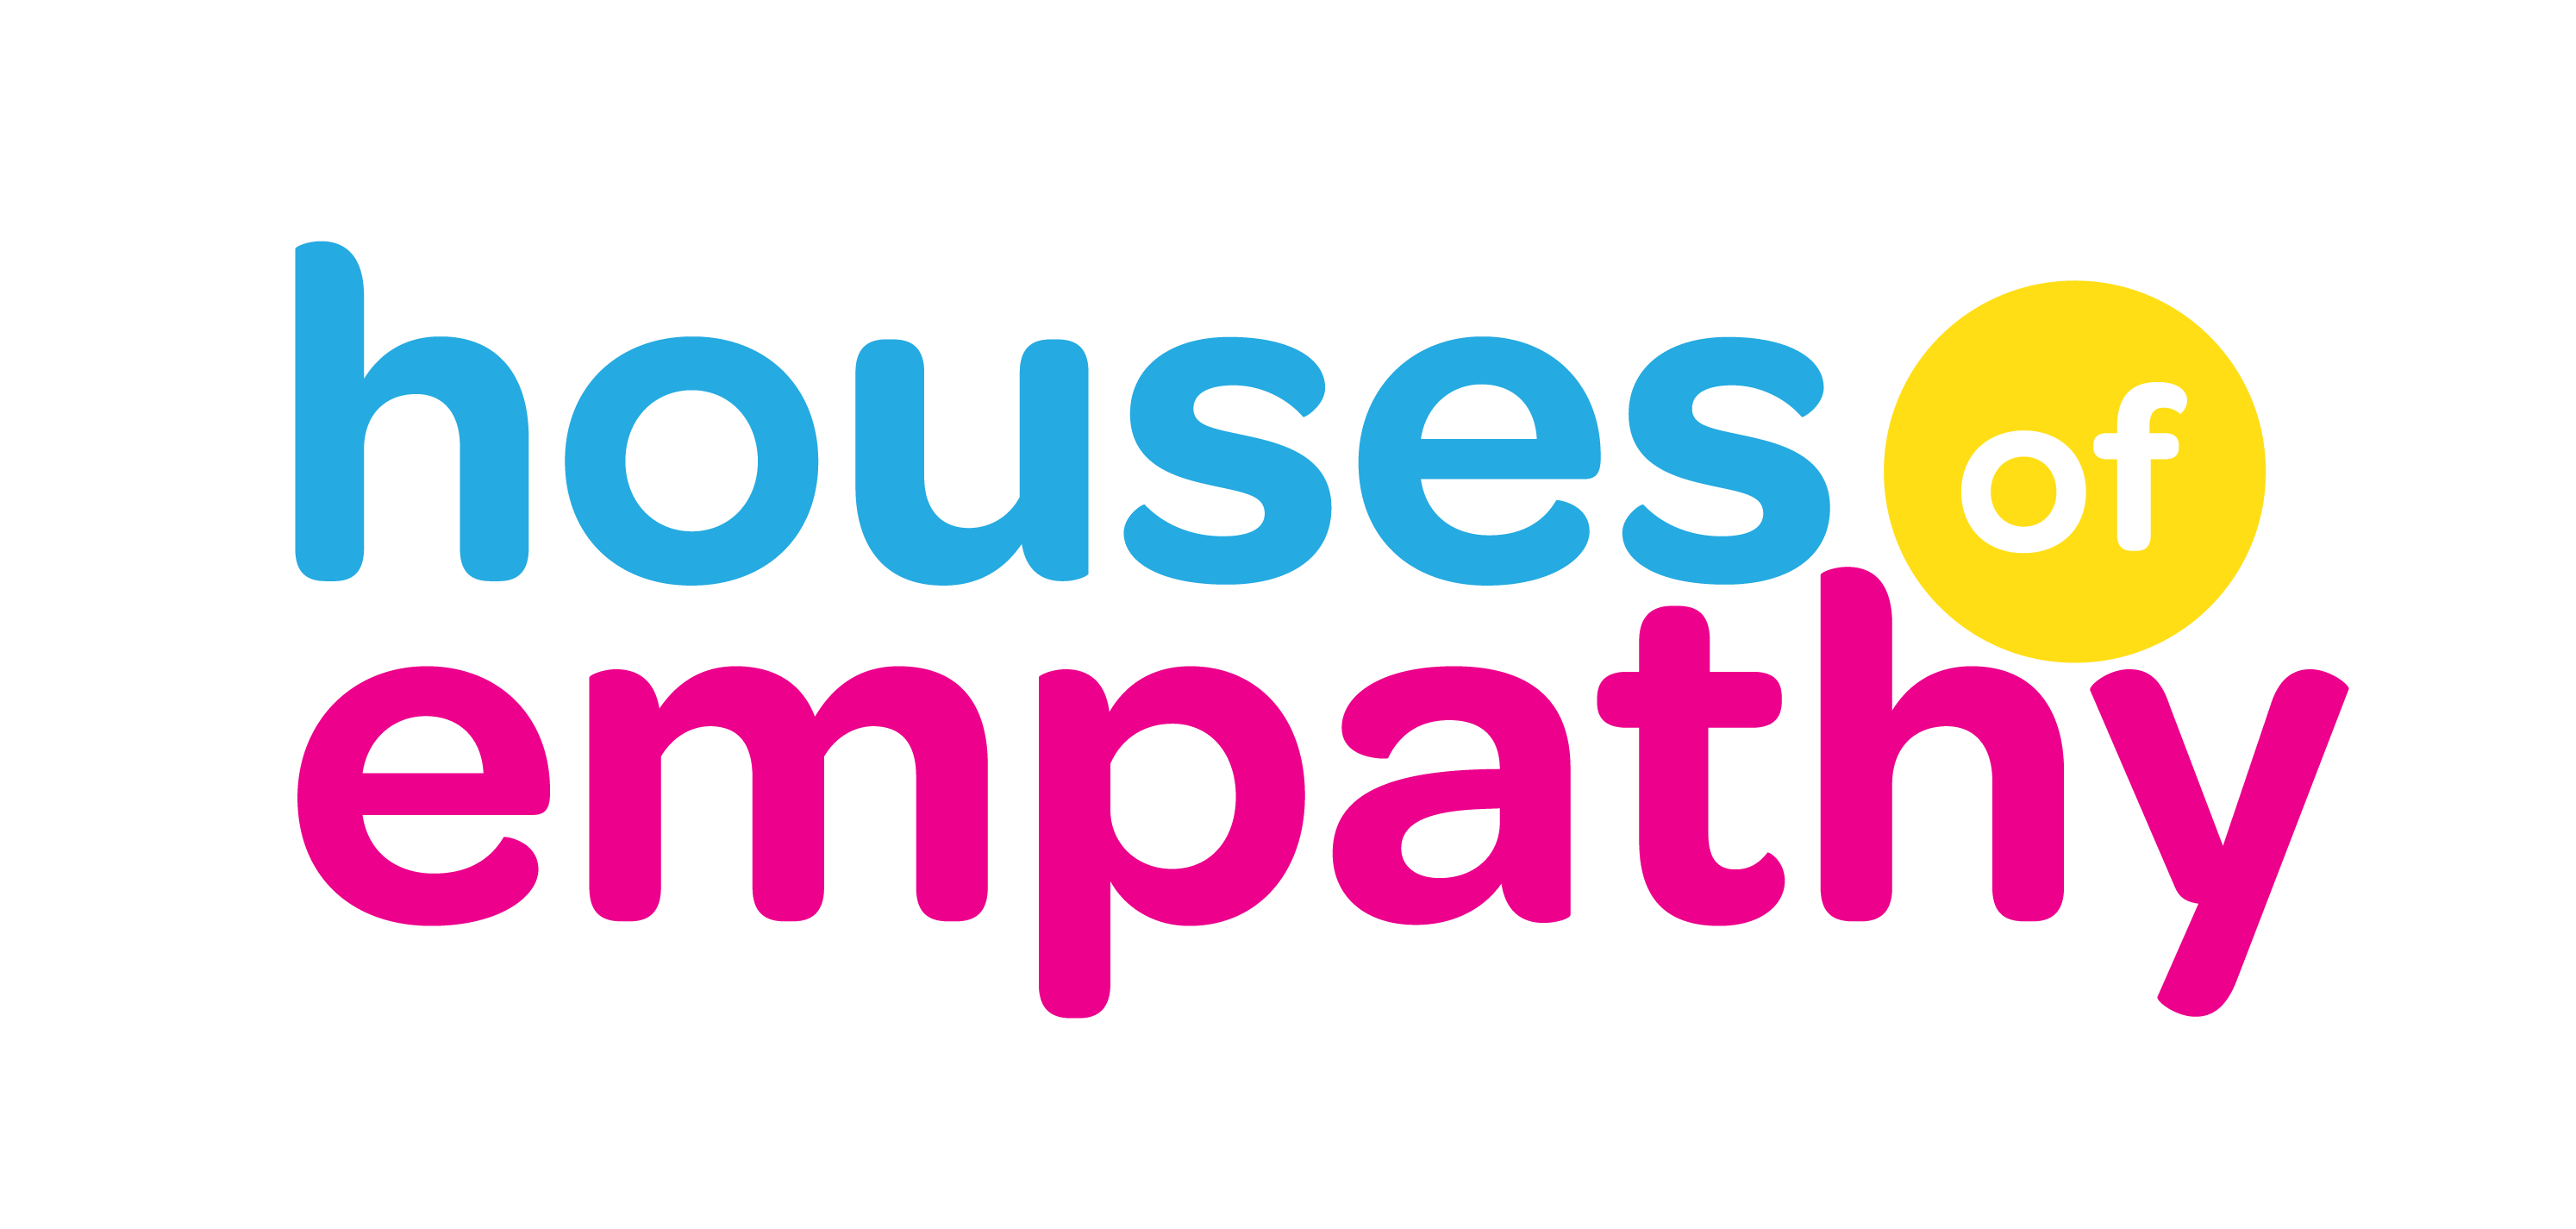 Houses of Empathy